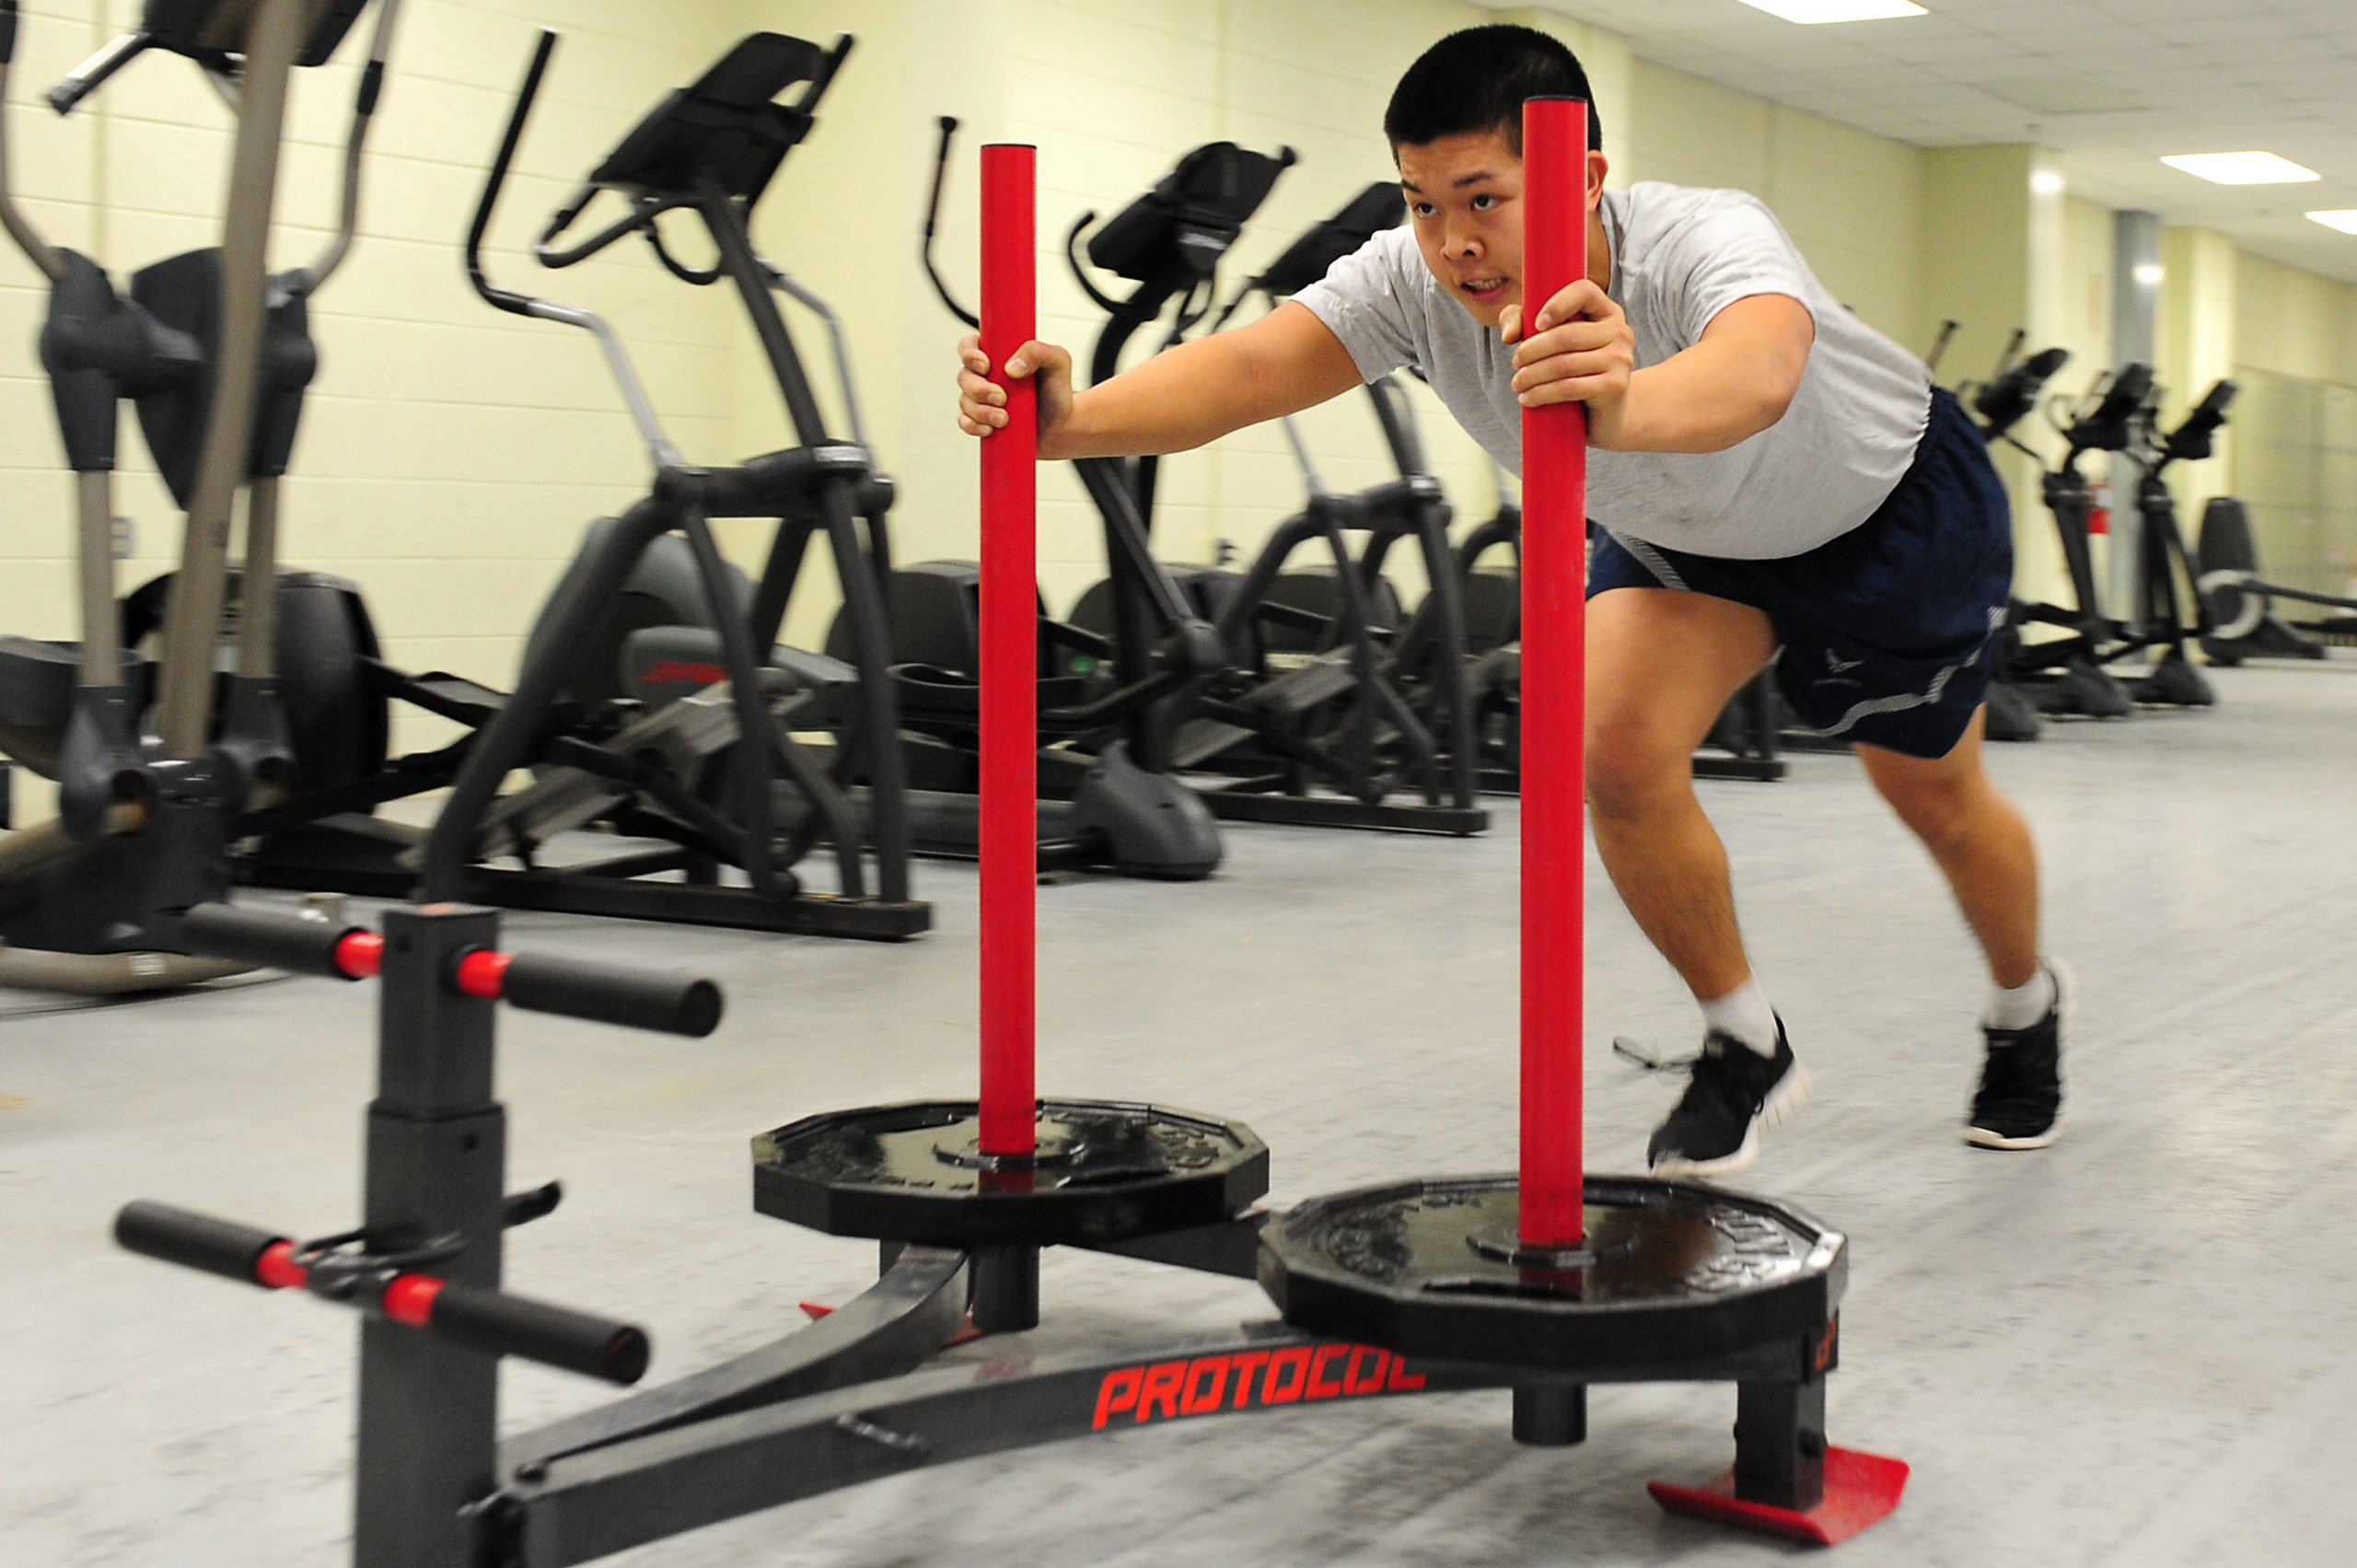 Push Your Self To The Limit With The Prowler